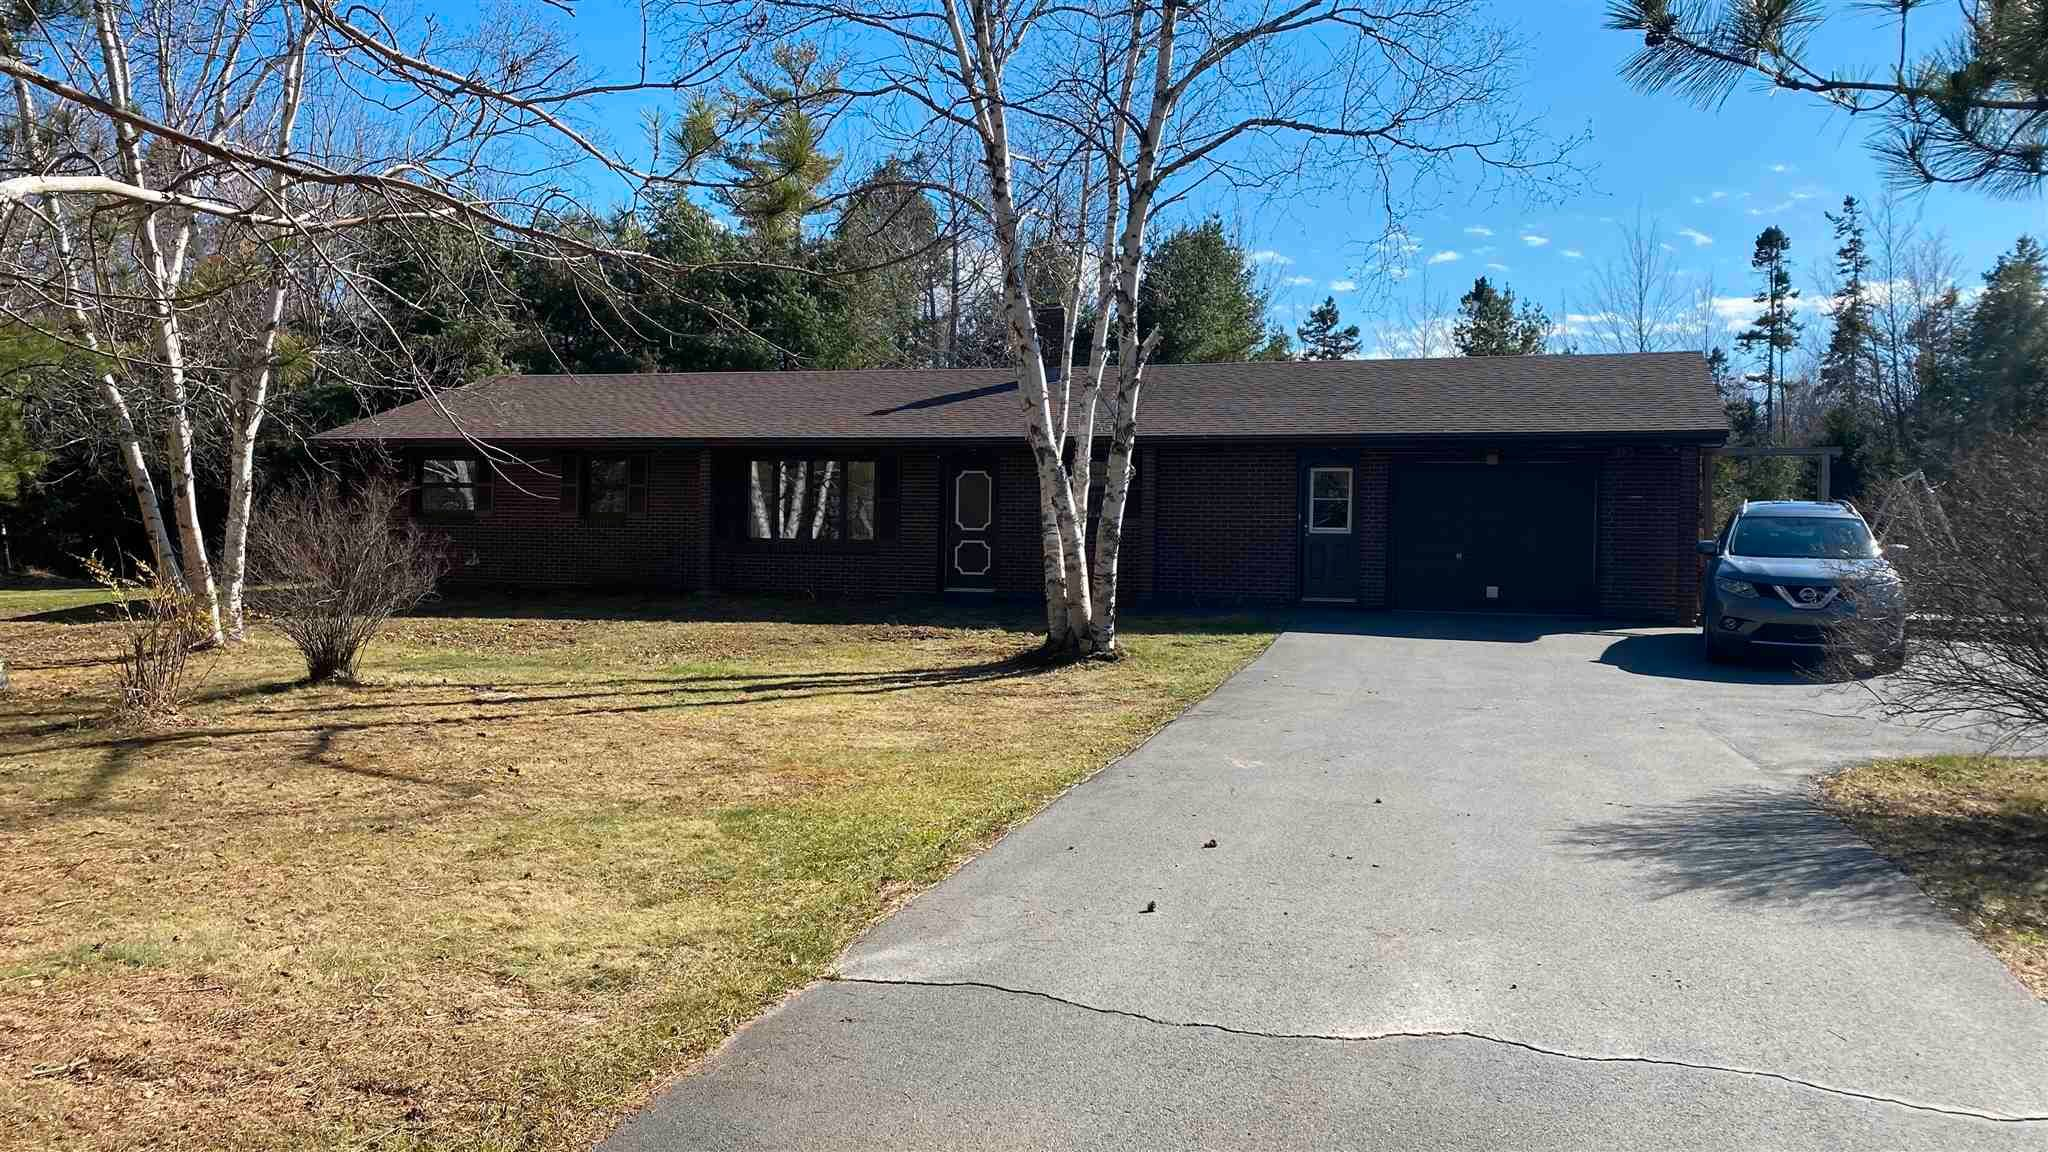 Main Photo: 1385 Granton  Abercrombie Road in Abercrombie: 108-Rural Pictou County Residential for sale (Northern Region)  : MLS®# 202110261